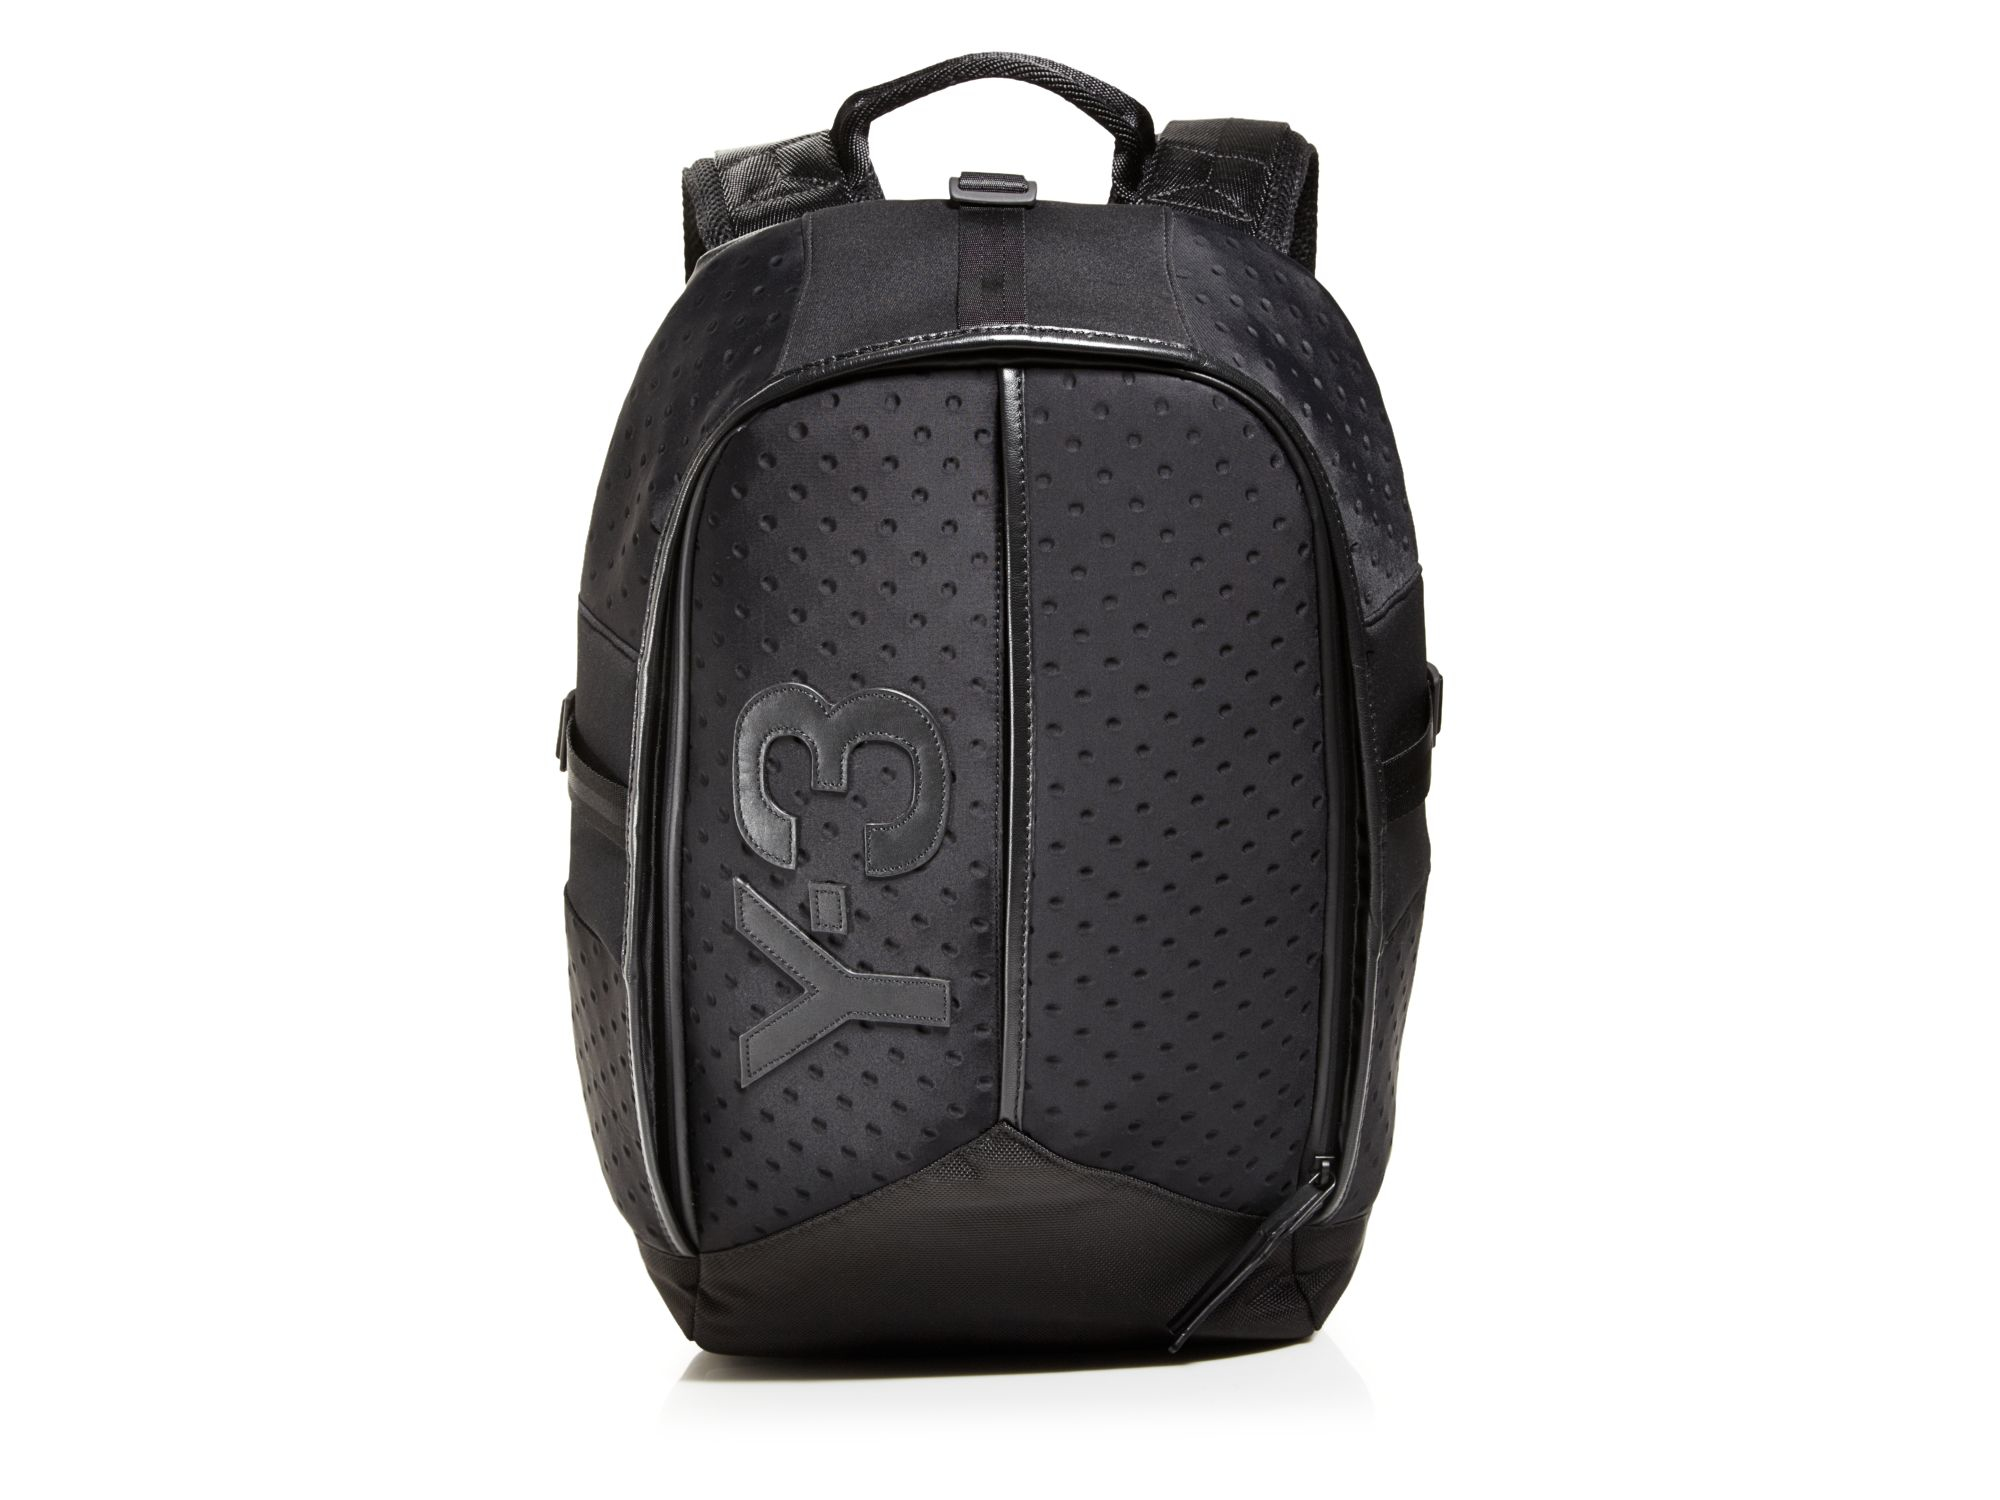 4a9f7b7389c4 Lyst - Y-3 Neoprene Backpack in Black for Men